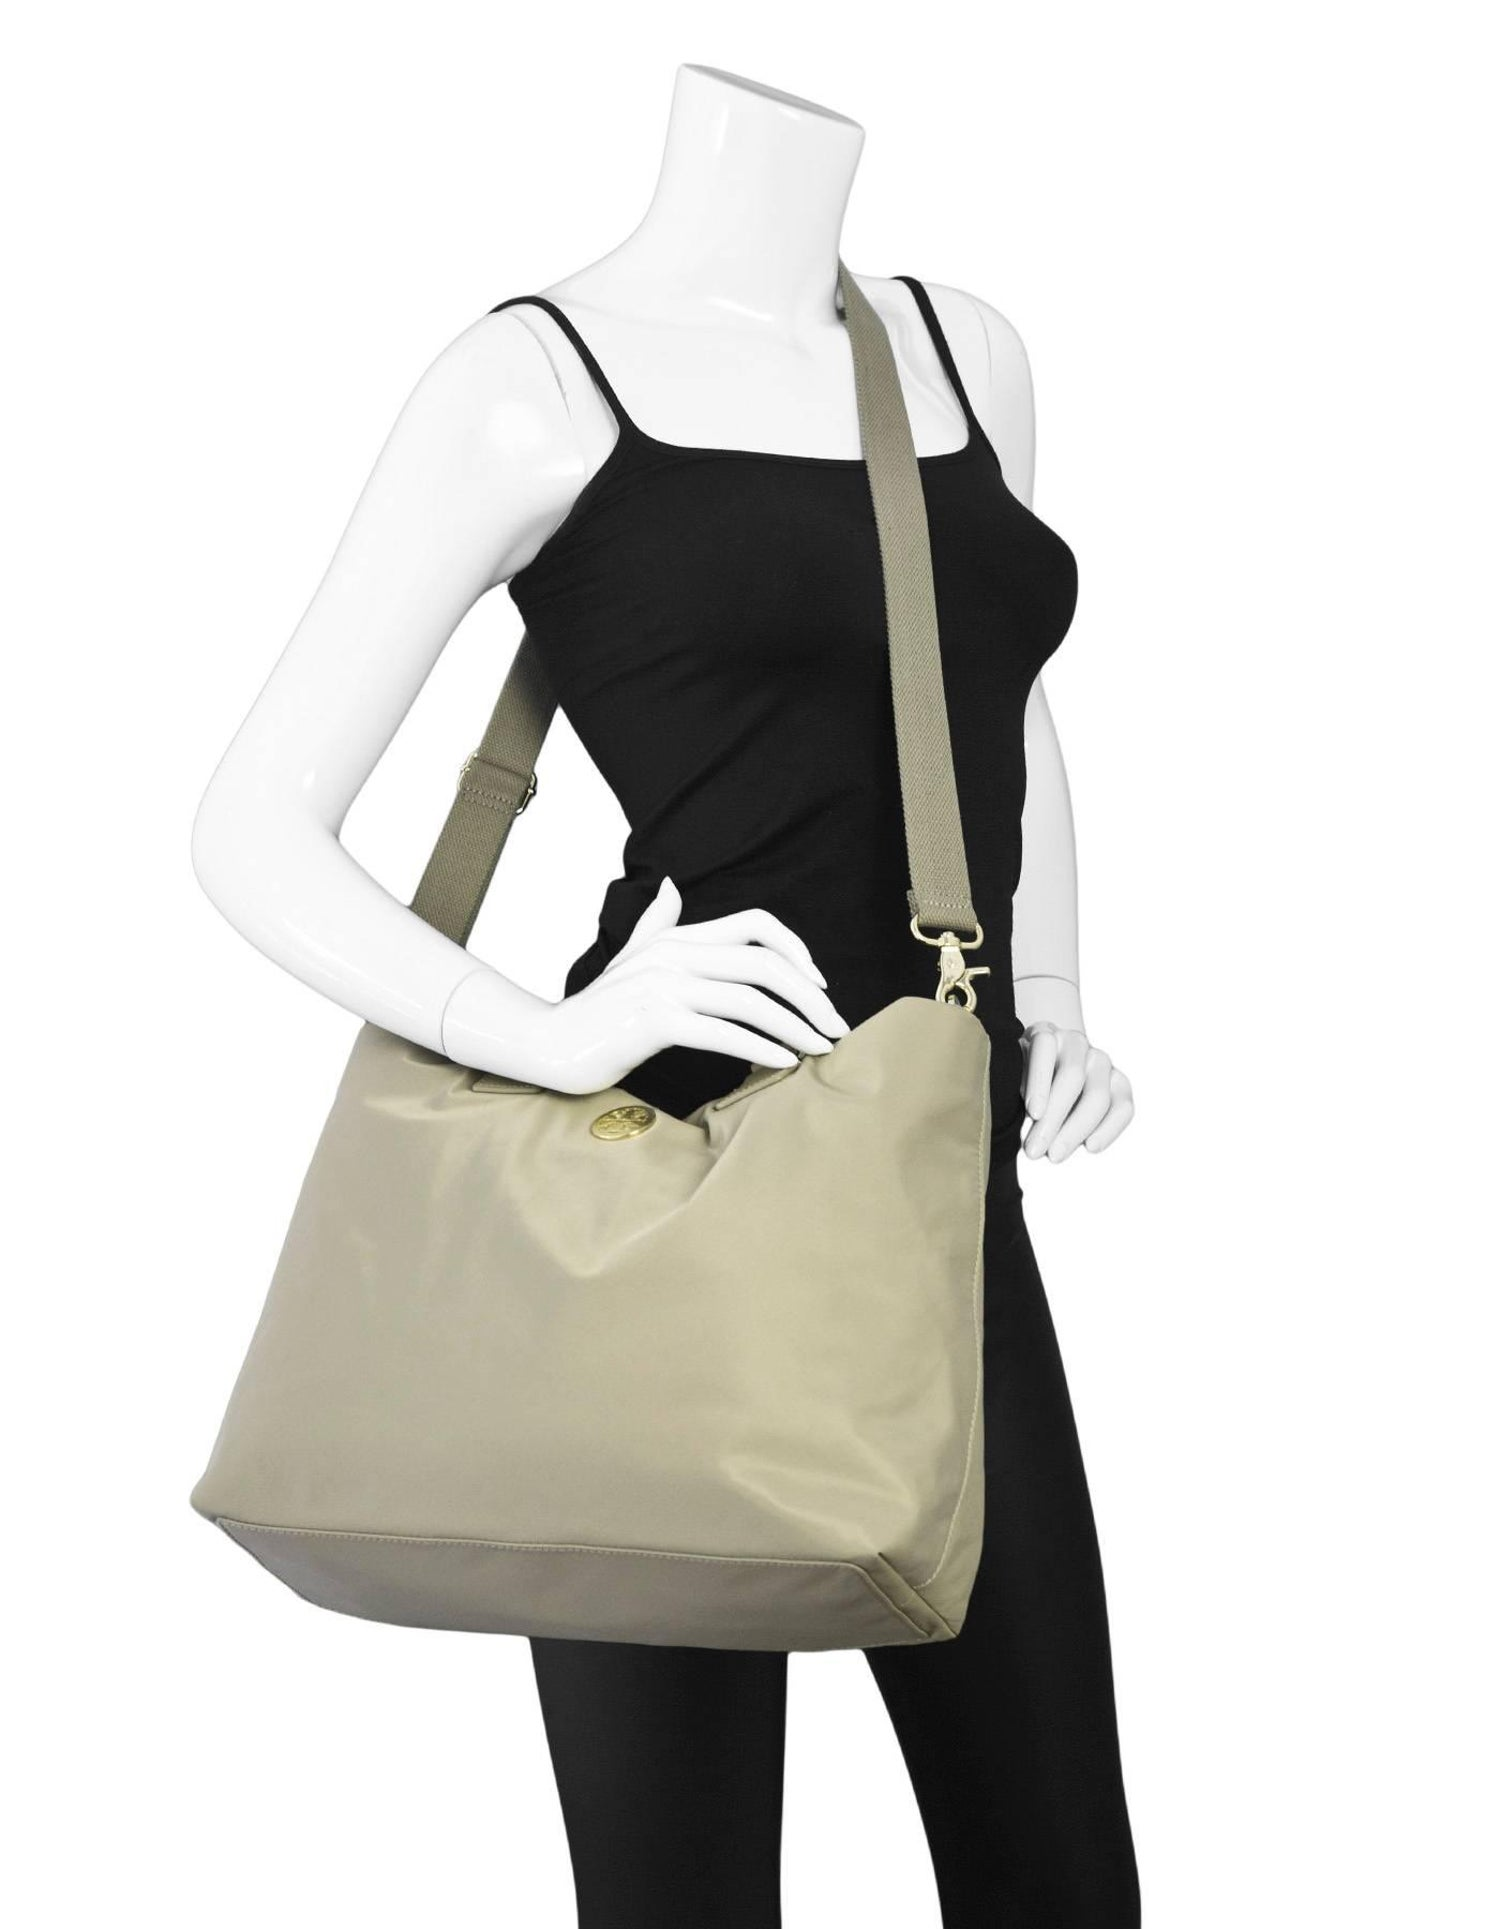 Tory Burch Beige Nylon Dene Tote Bag W Strap For Sale At 1stdibs Large York French Gray